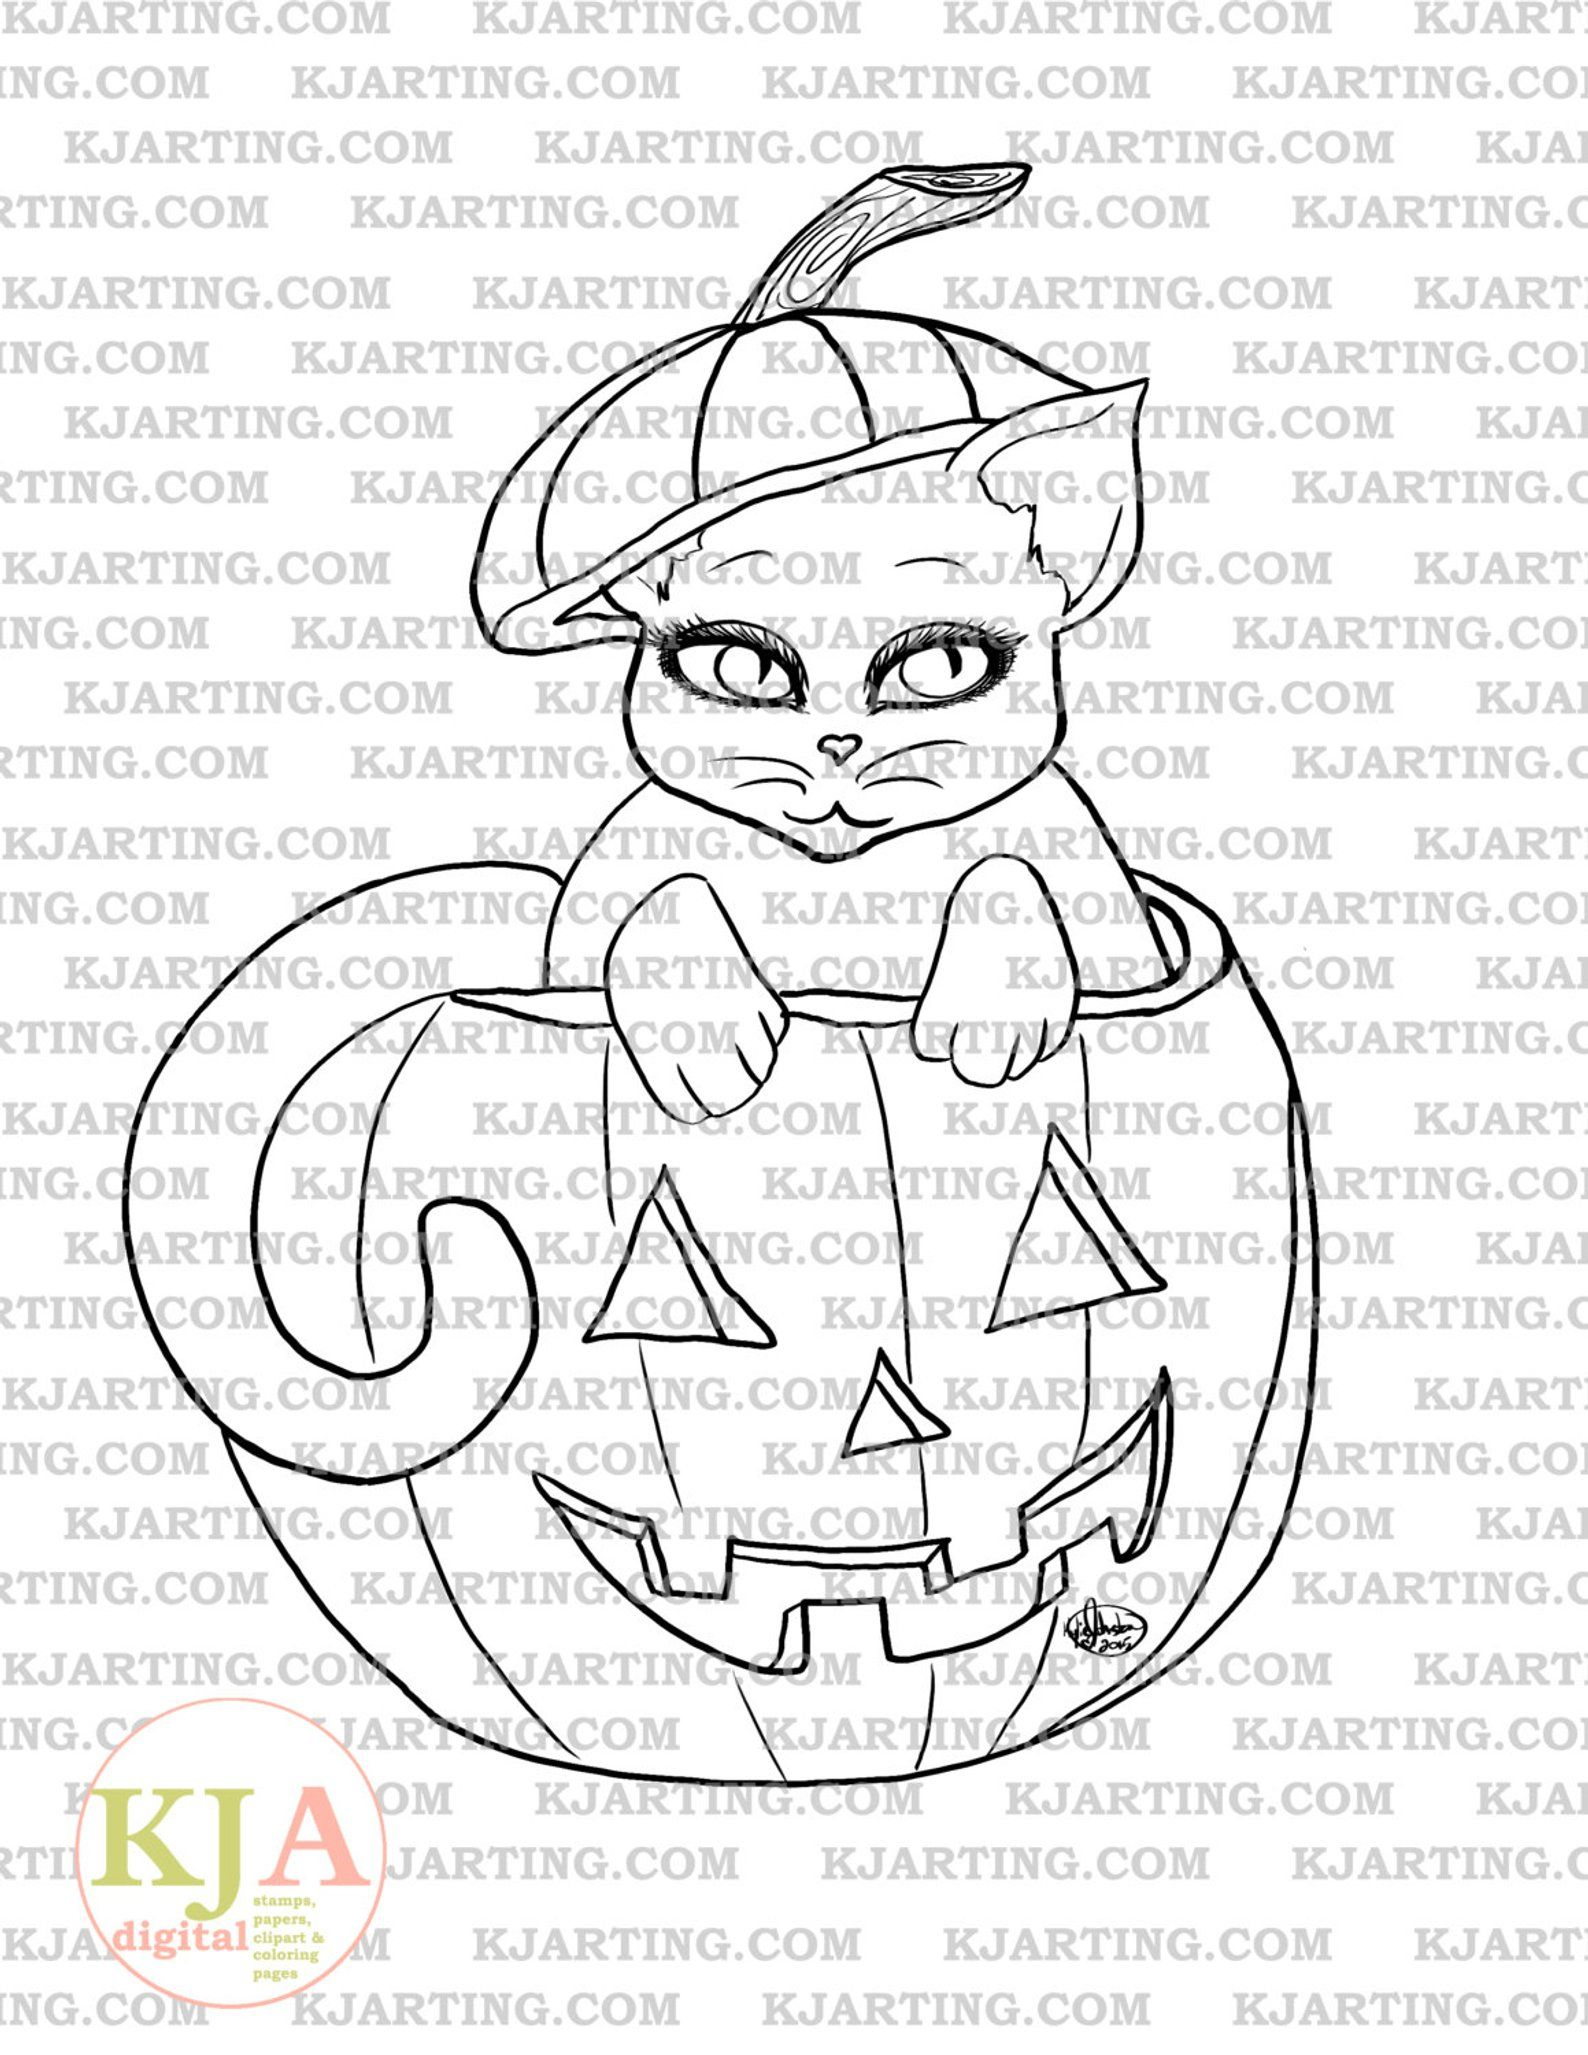 Jack O Lantern Kitty Digital Stamp Line Art Printable